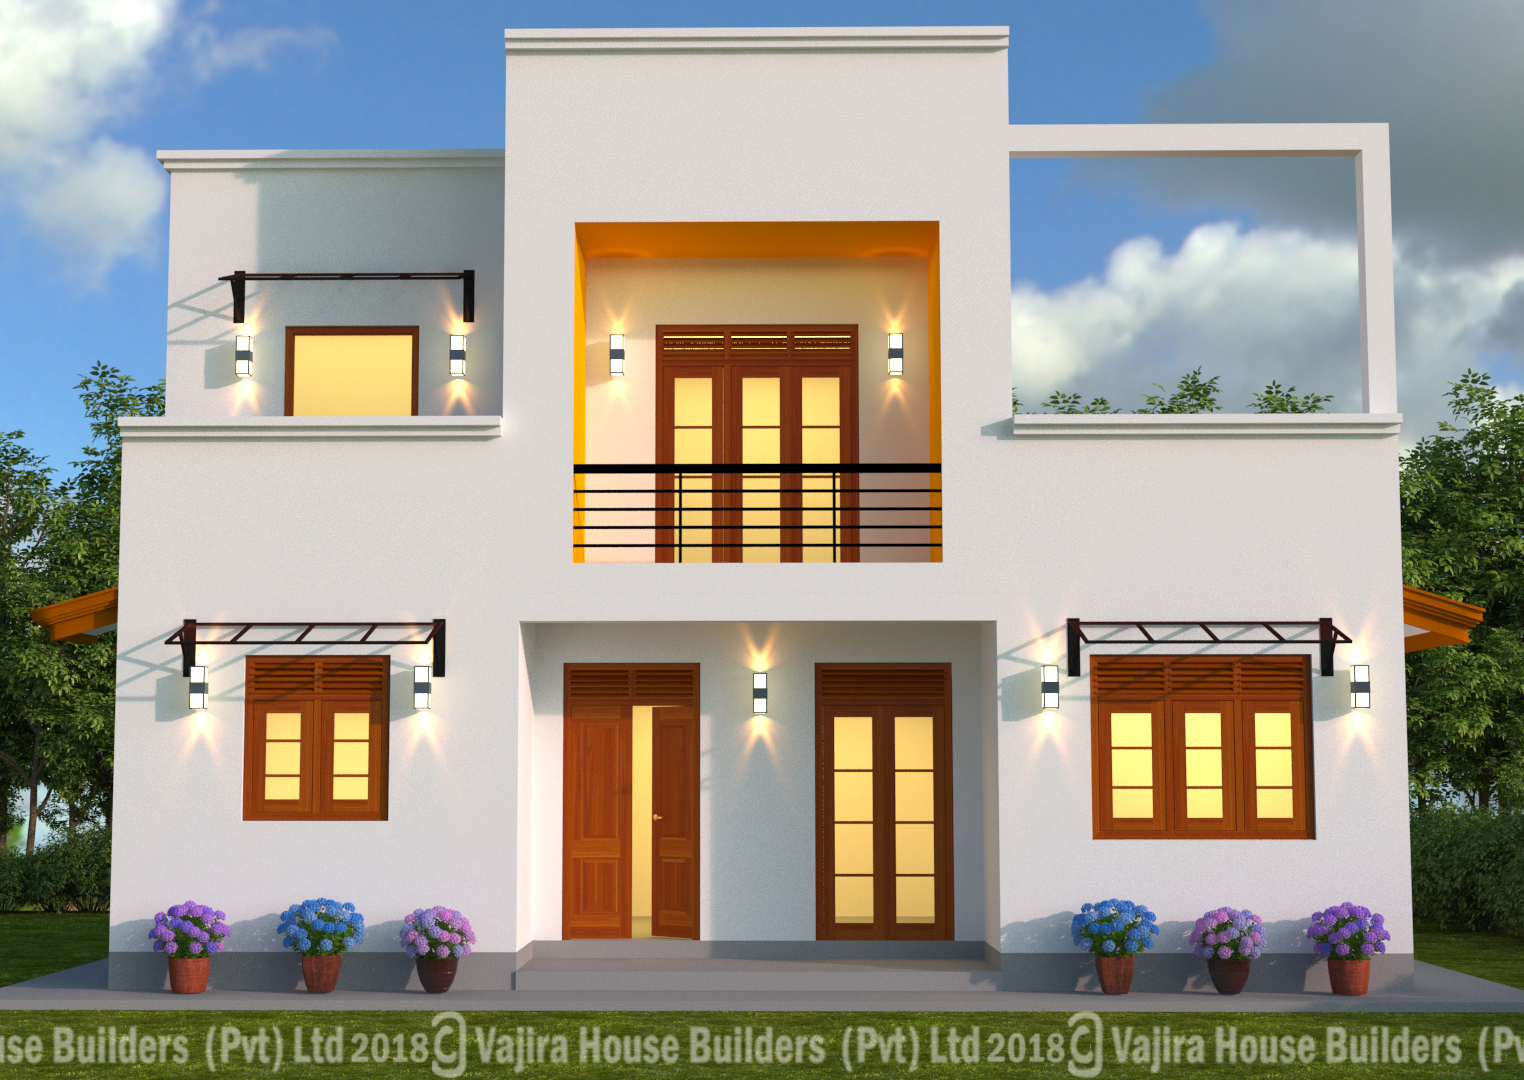 Ts 800 Vajira House Builders Private Limited Best